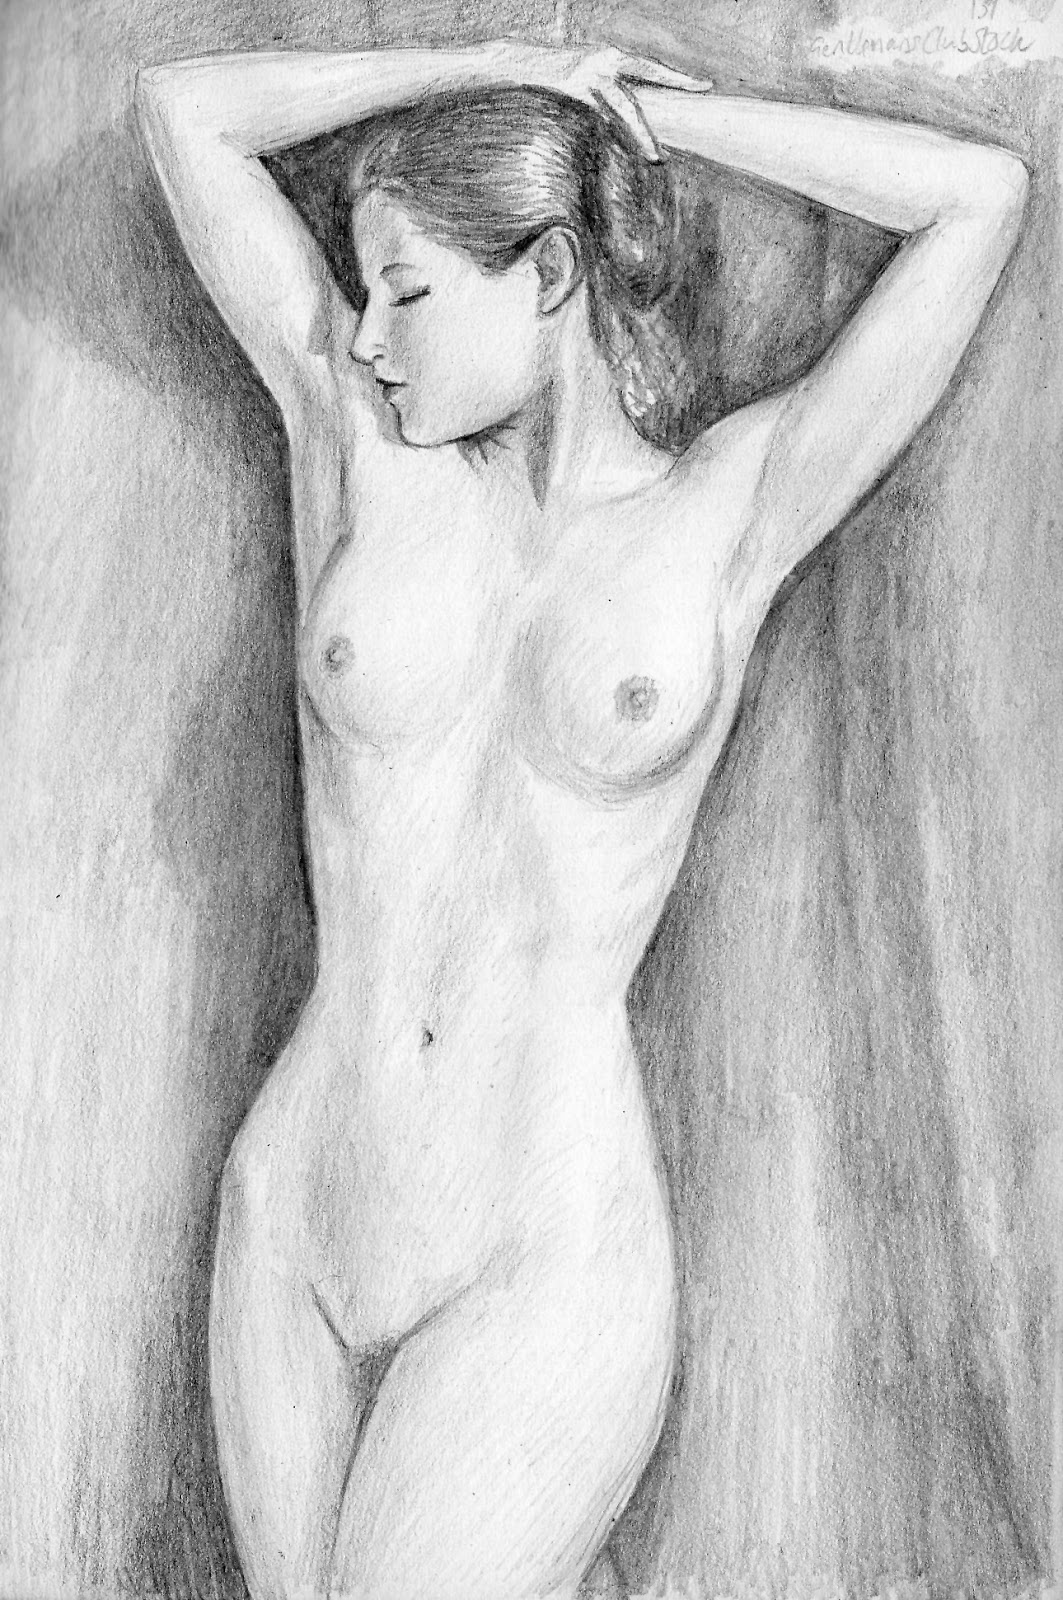 Nude hot girls drawings adult photos